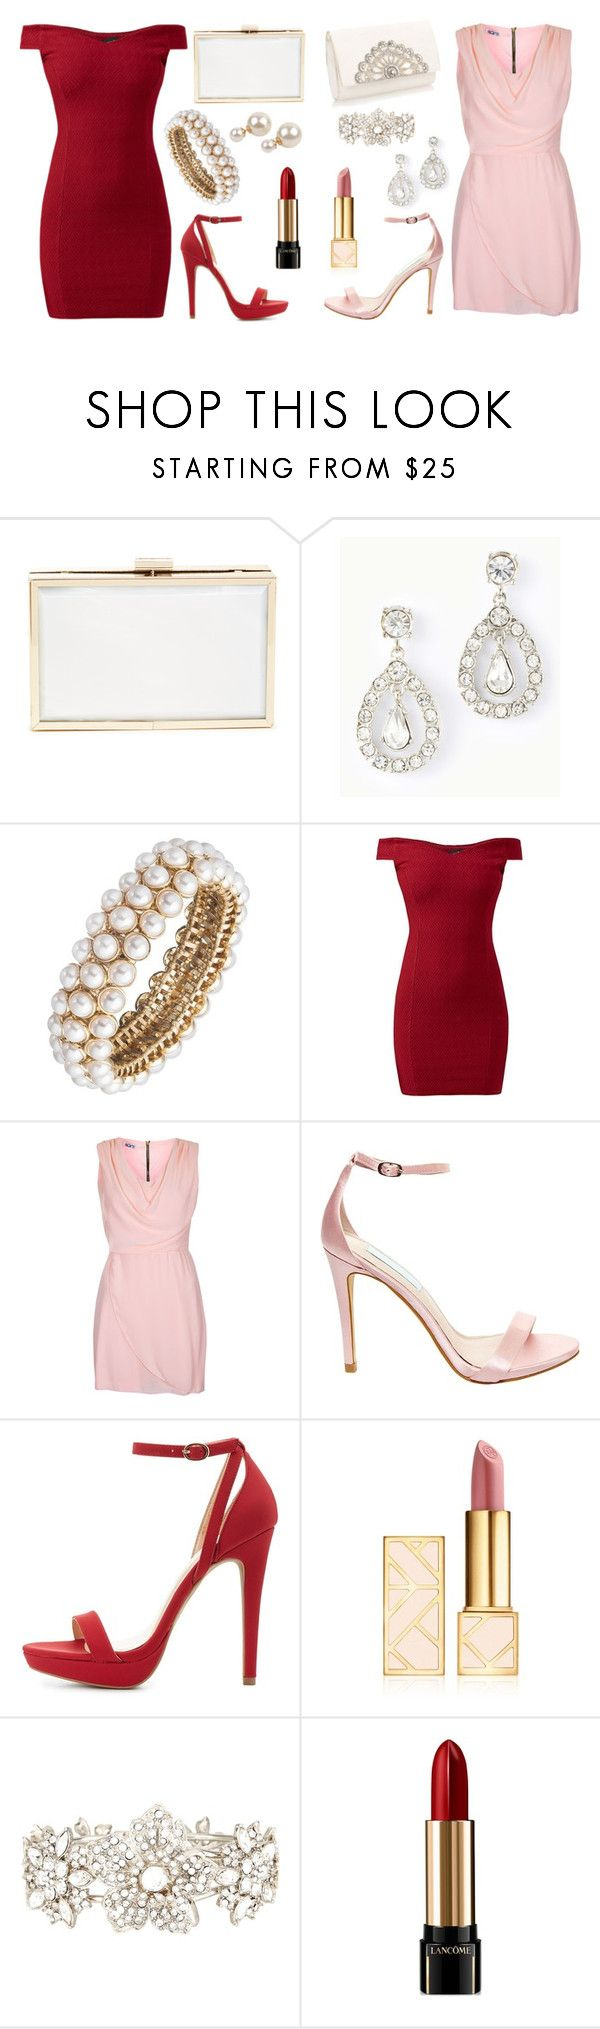 """""""Elegant"""" by fallingrainfromthesky ❤ liked on Polyvore featuring Ann Taylor, Anne Klein, WalG, Betsey Johnson, Wild Diva, Tory Burch, Nina, Lancôme and Armitage Avenue"""